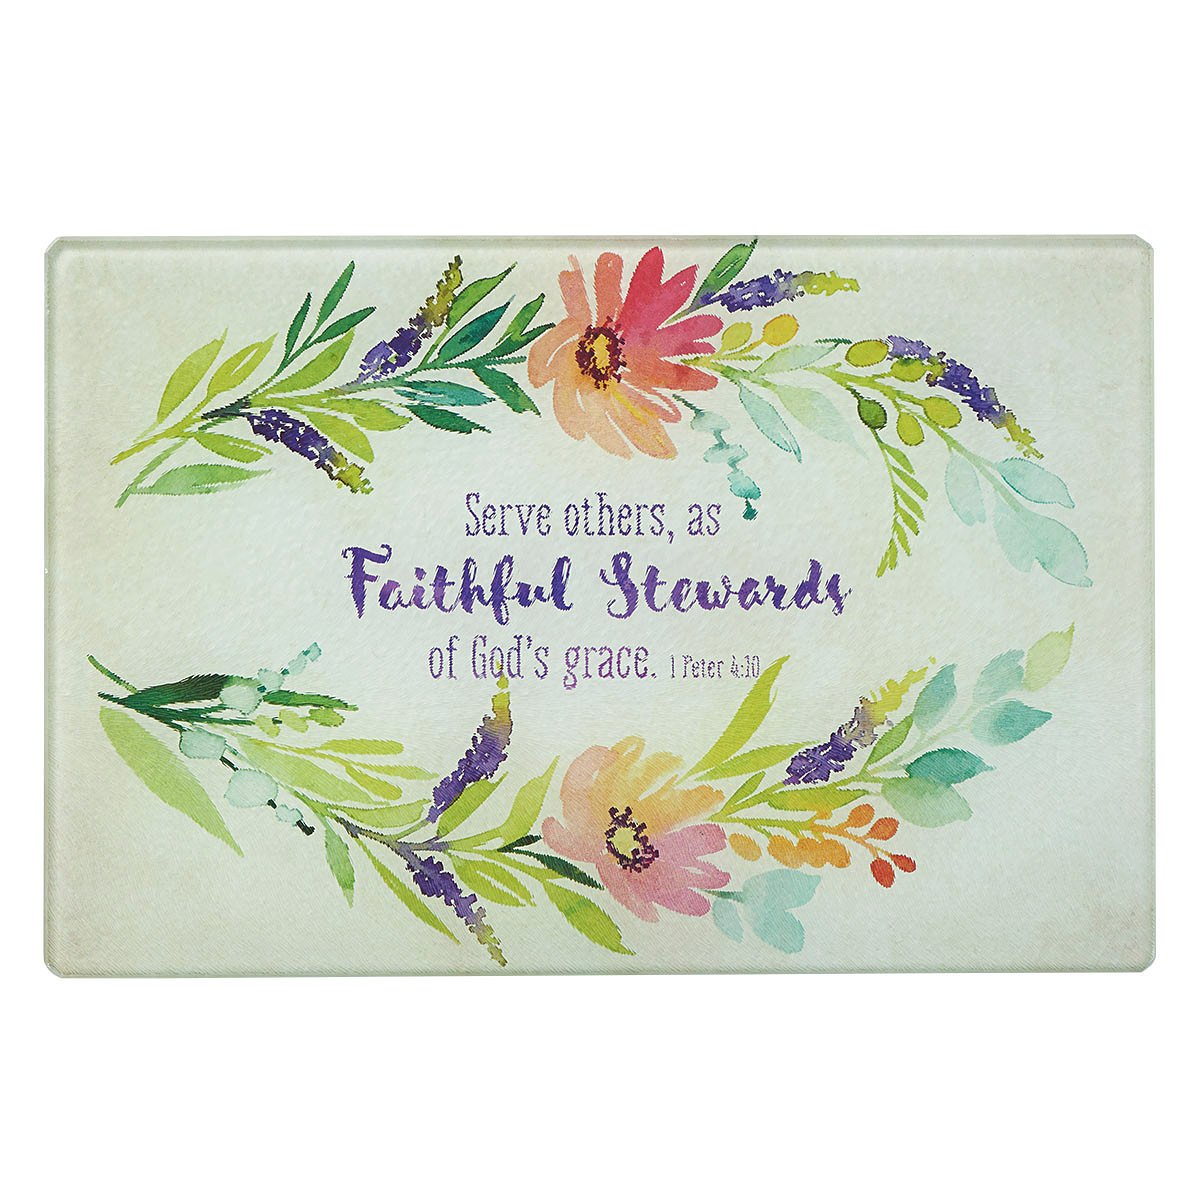 Watercolor Collection ''Faithful Stewards'' Glass Cutting Board / Trivet (Small: 11 7/8 x 7 7/8) - 1 Peter 4:10 by Christian Art Gifts